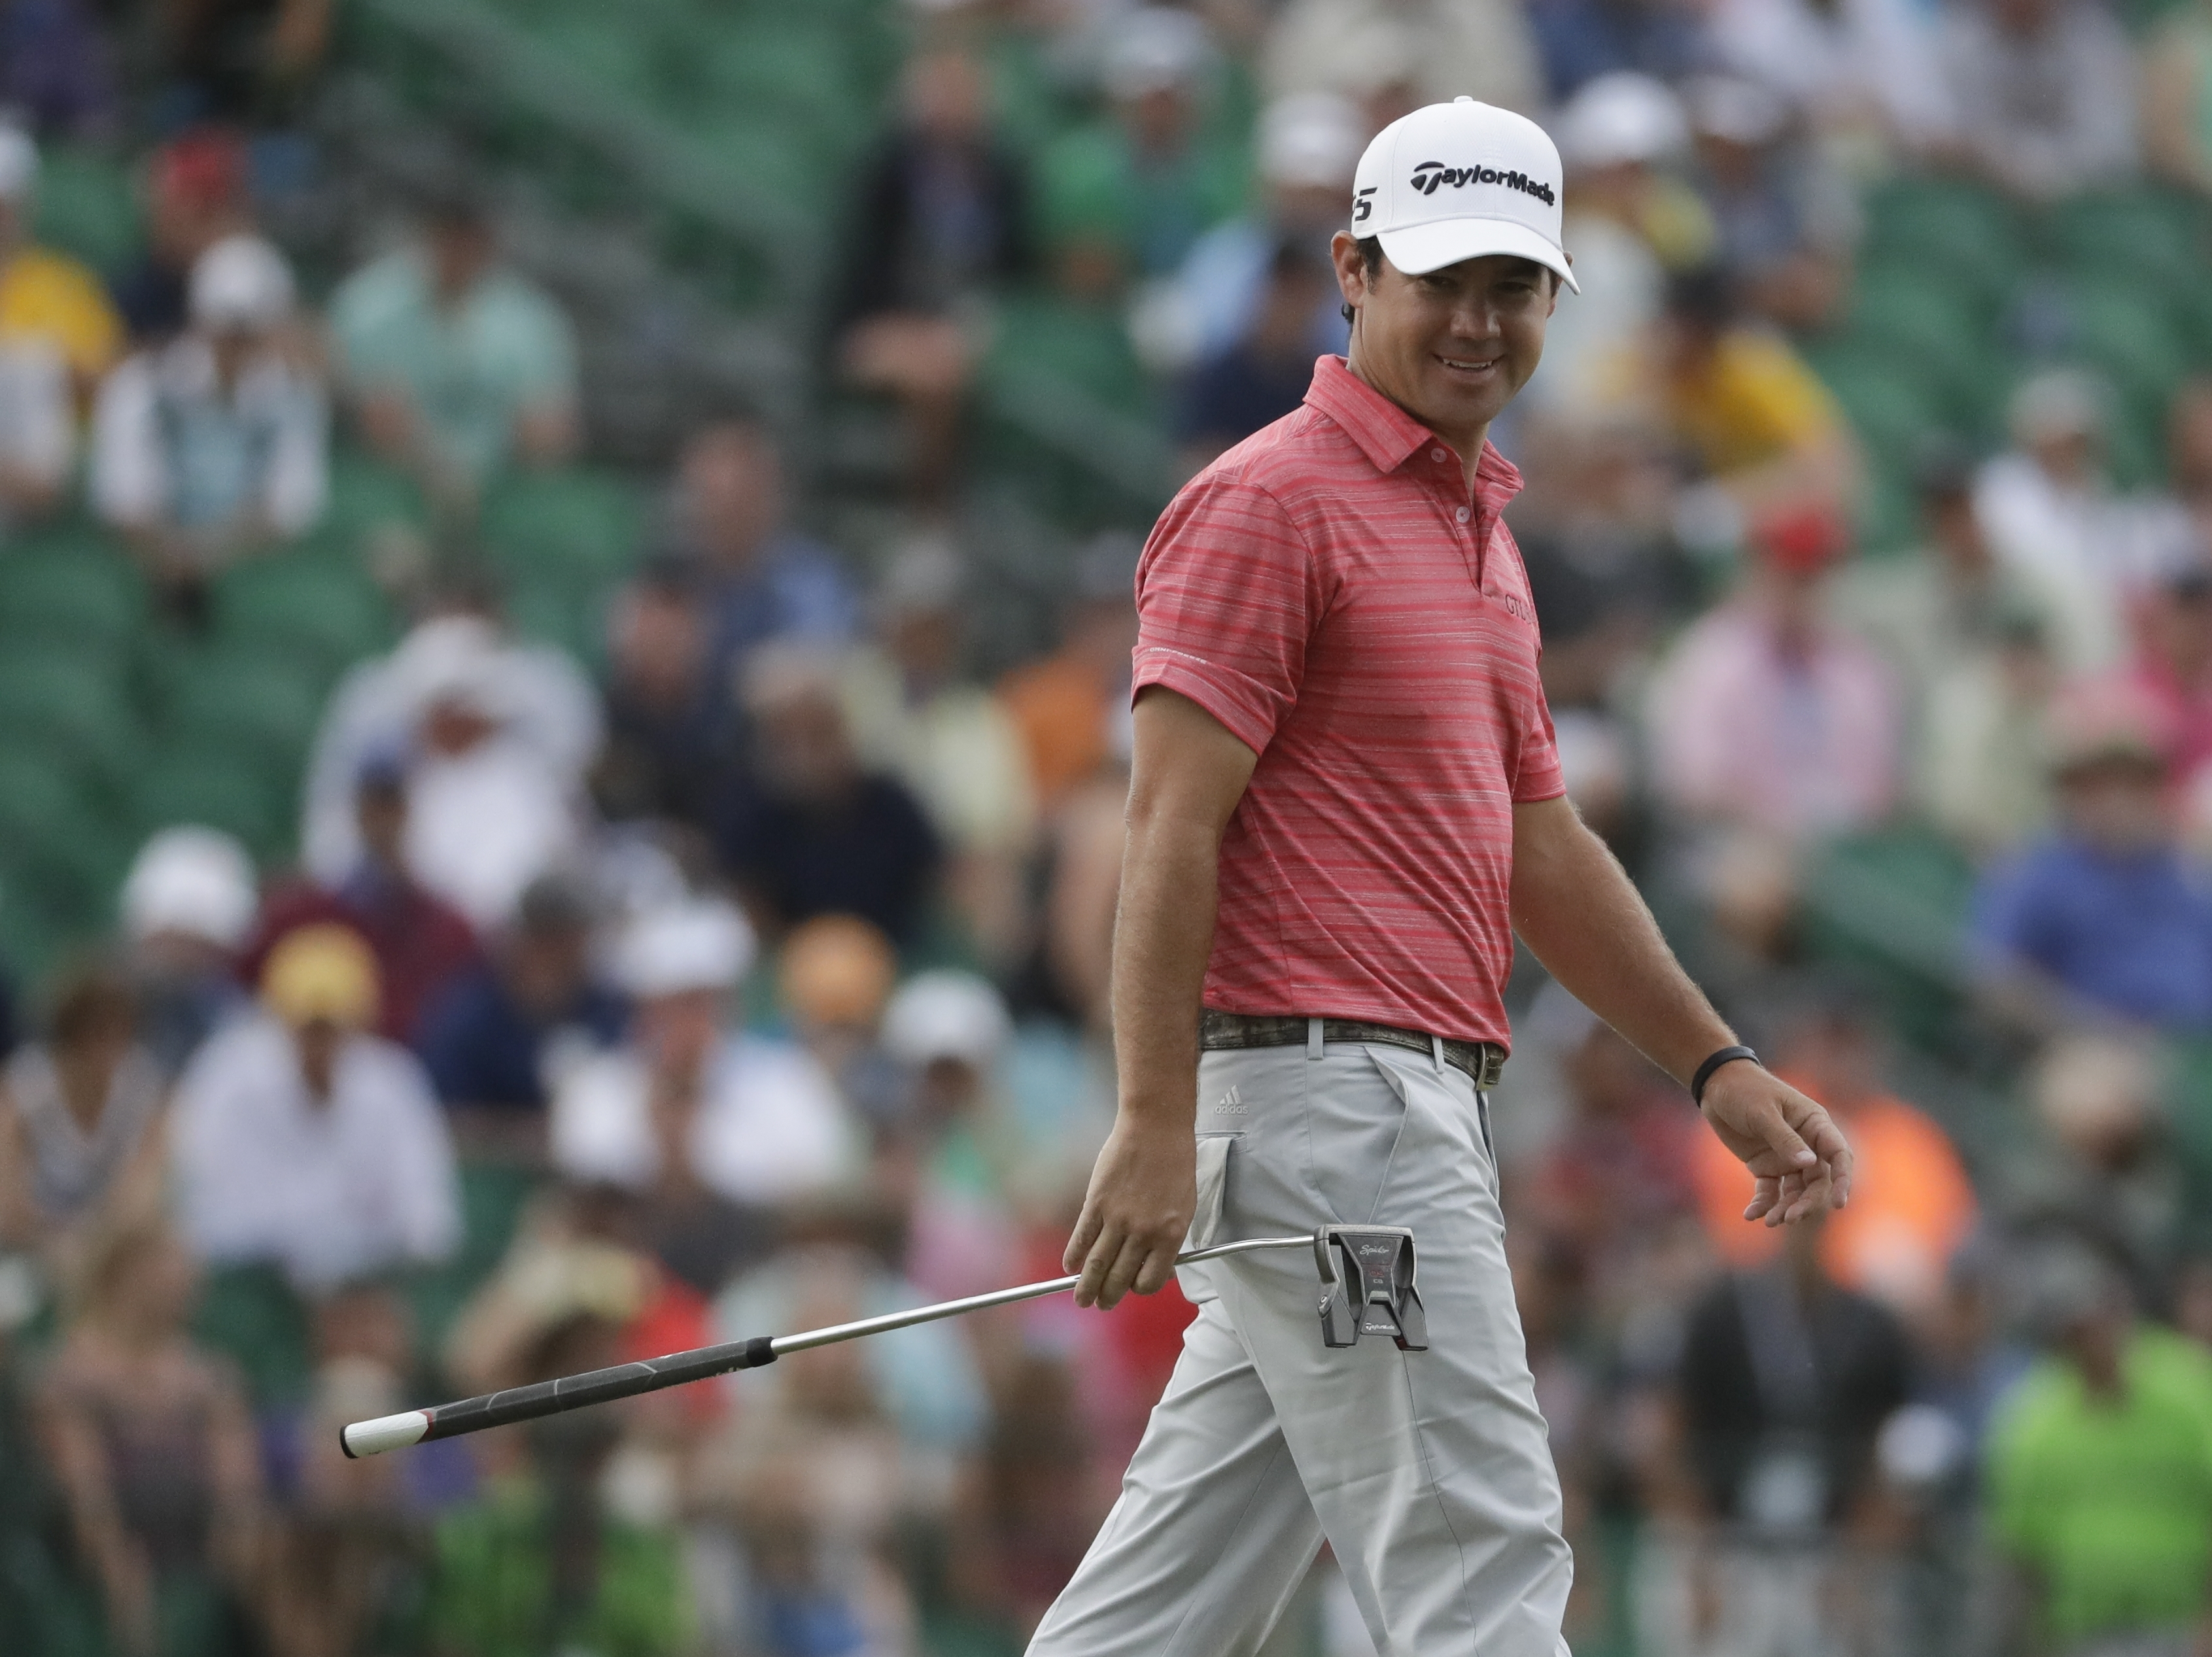 Brian Harman smiles on the 18th green during the third round of the U.S. Open golf tournament Saturday, June 17, 2017, at Erin Hills in Erin, Wis. (AP Photo/Chris Carlson)